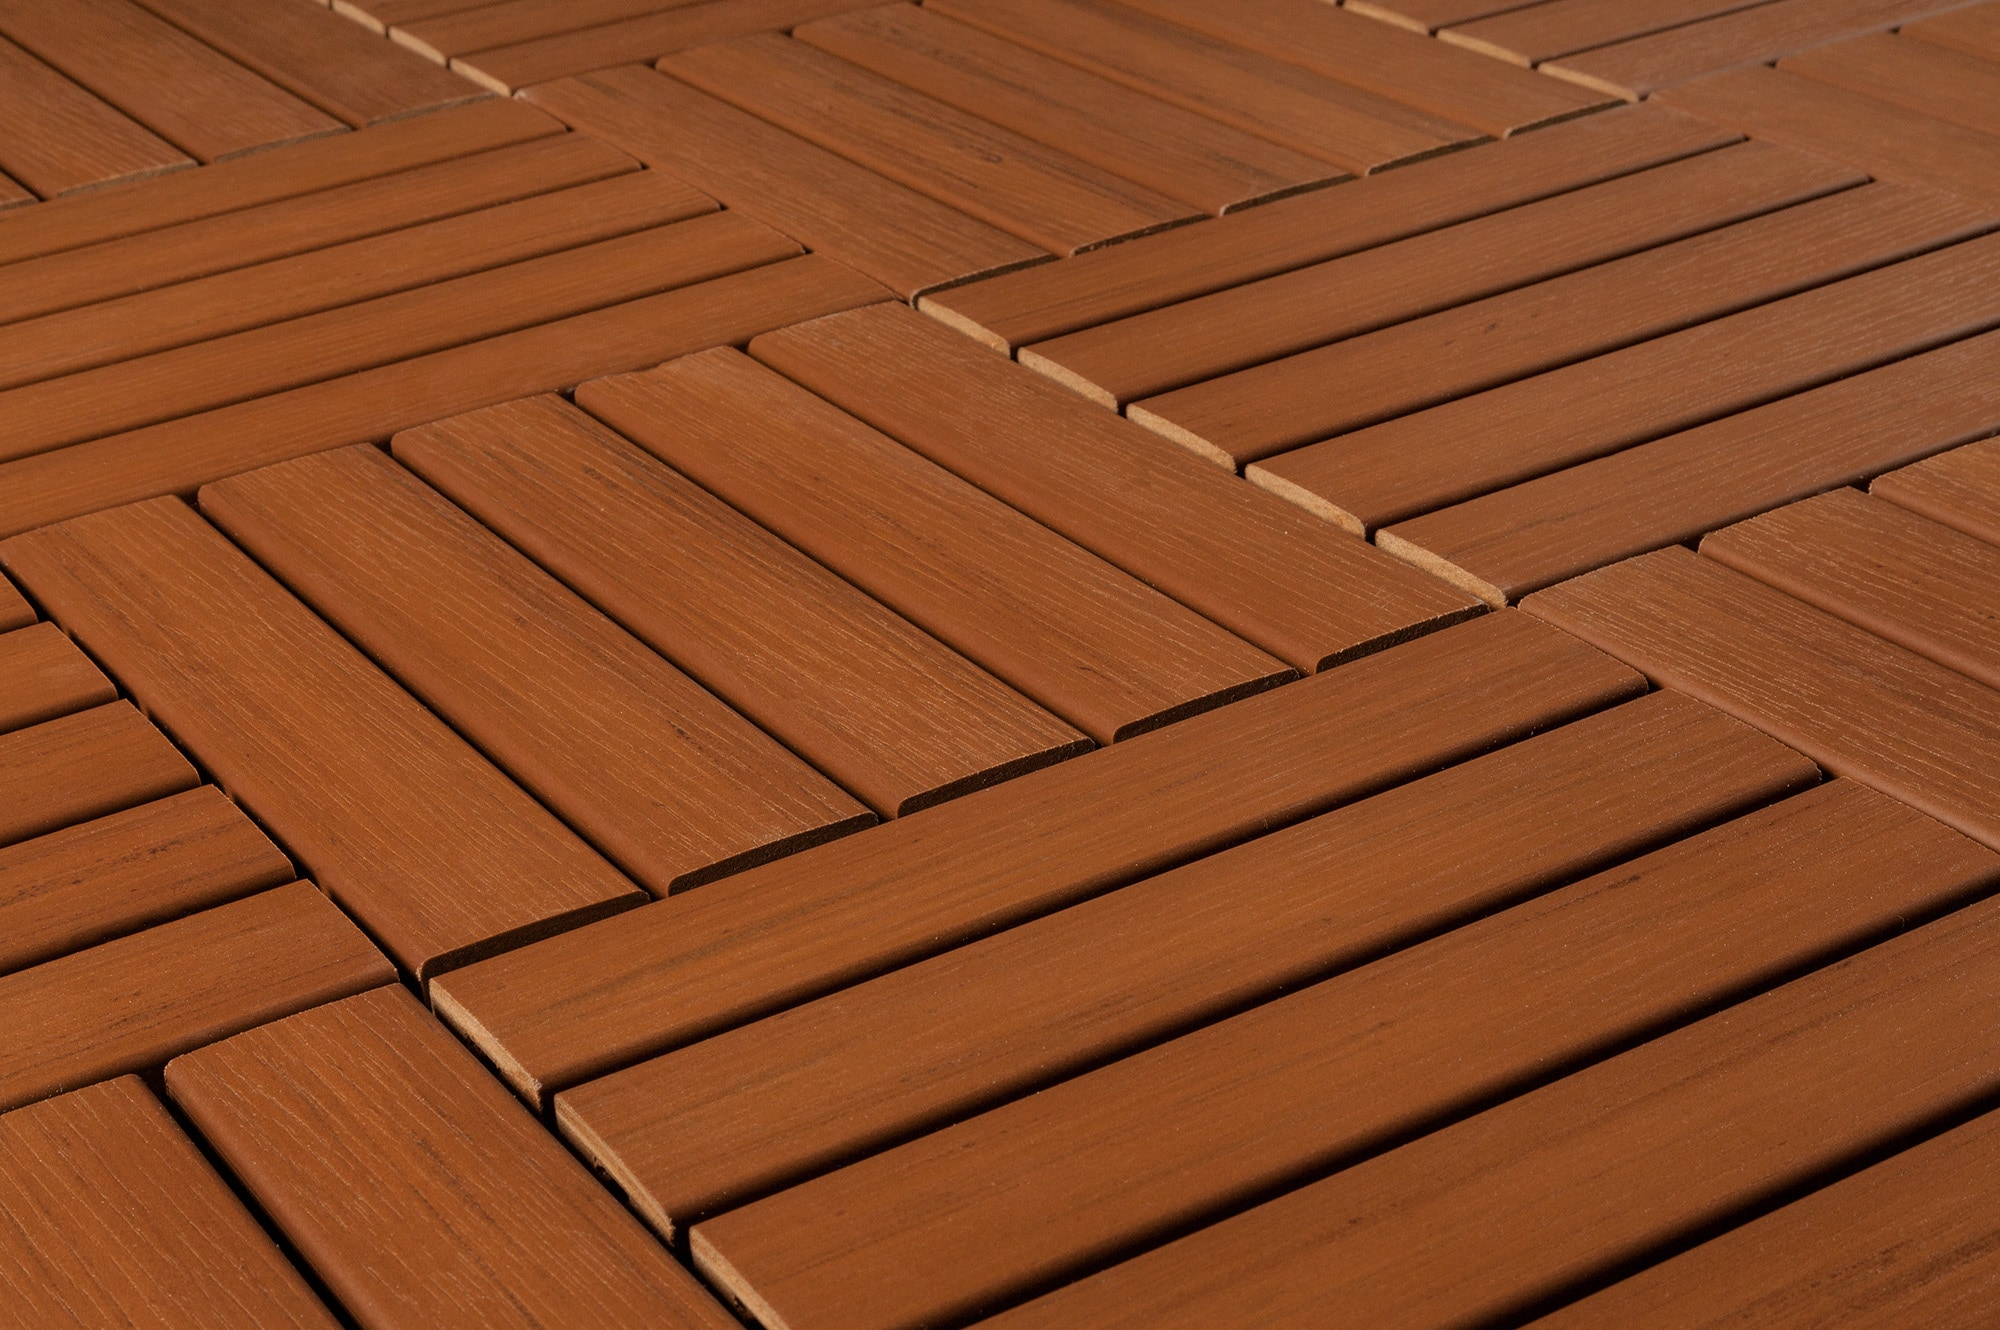 Kontiki interlocking deck tiles engineered polymer series premium kontiki interlocking deck tiles engineered polymer series premium resin deck tile cedar 12x12x1 dailygadgetfo Choice Image